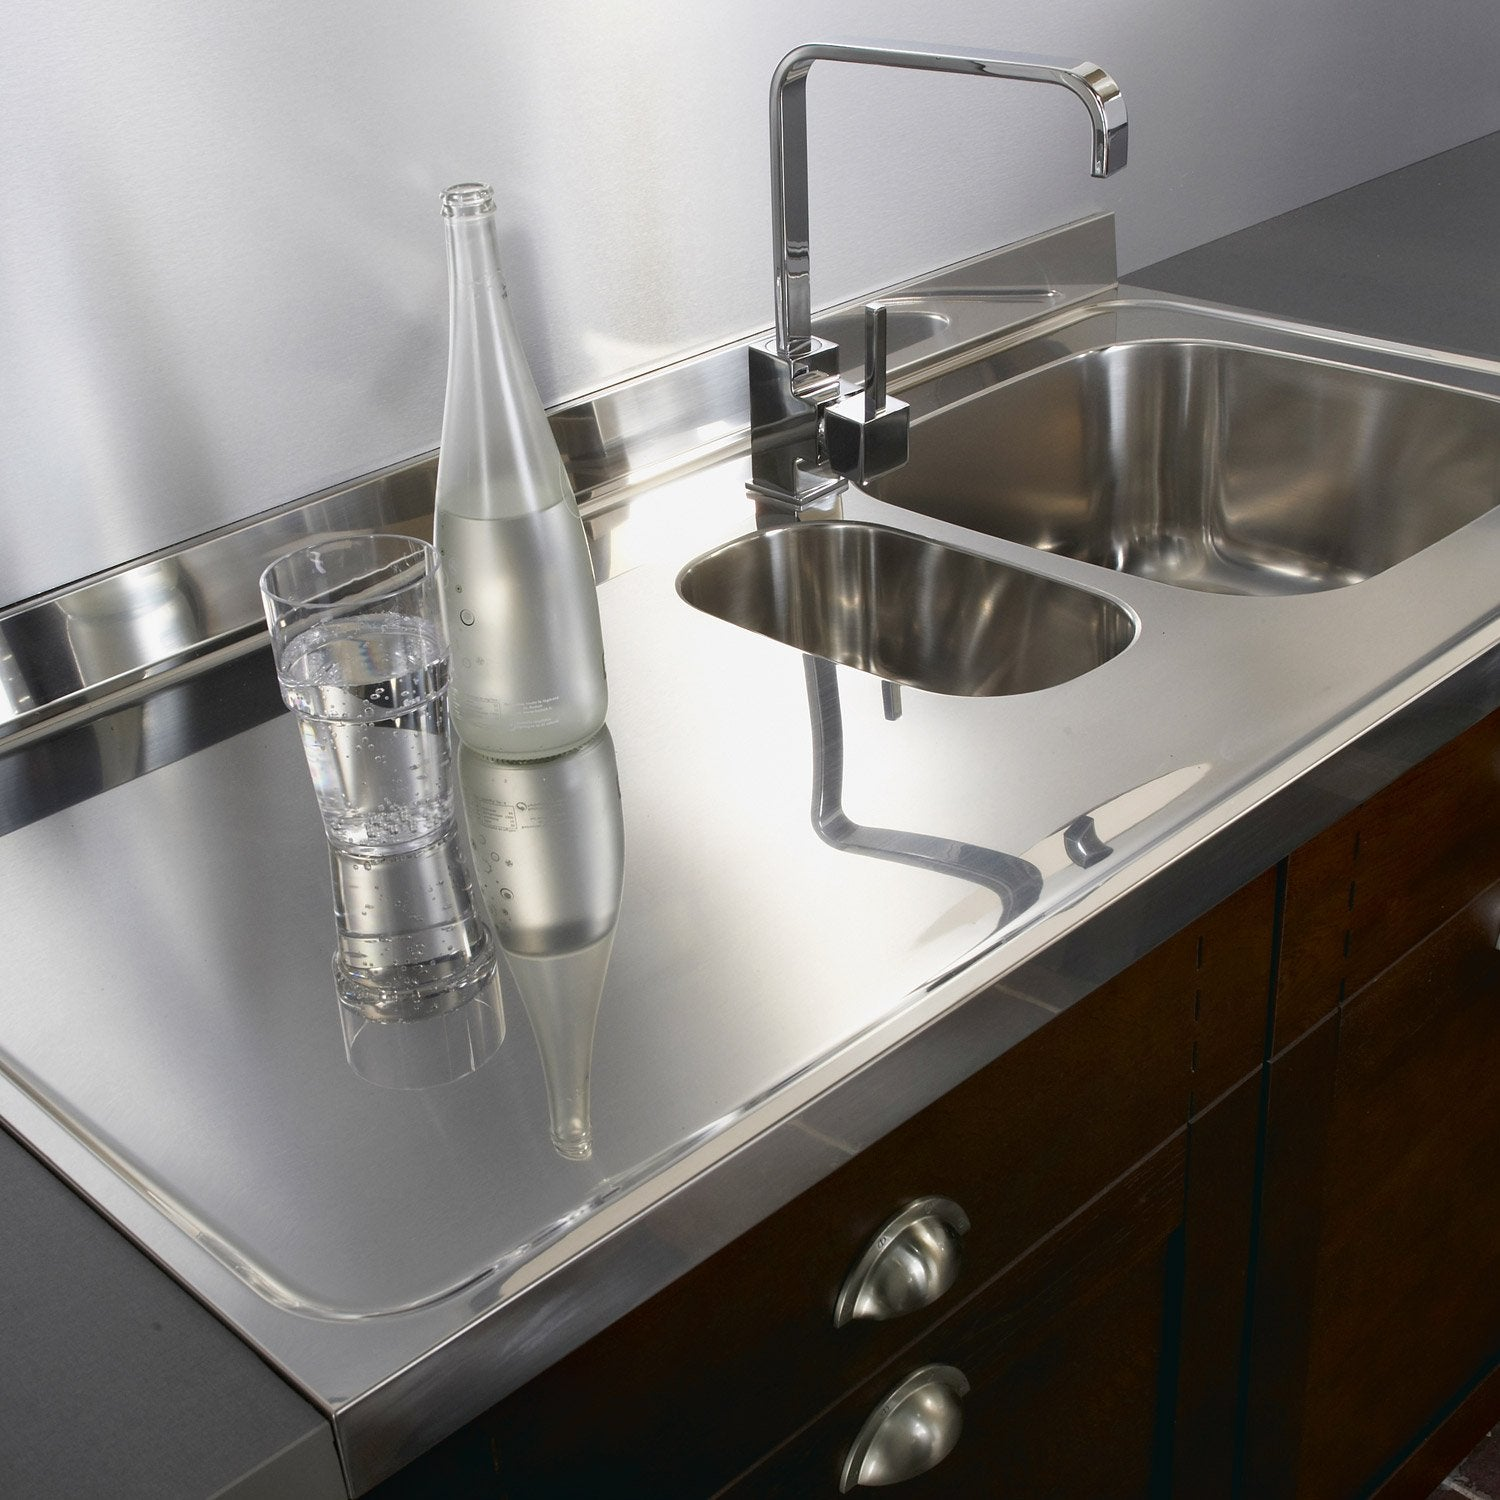 Plan vier inox brillant x cm mm leroy for Plan de cuisine inox